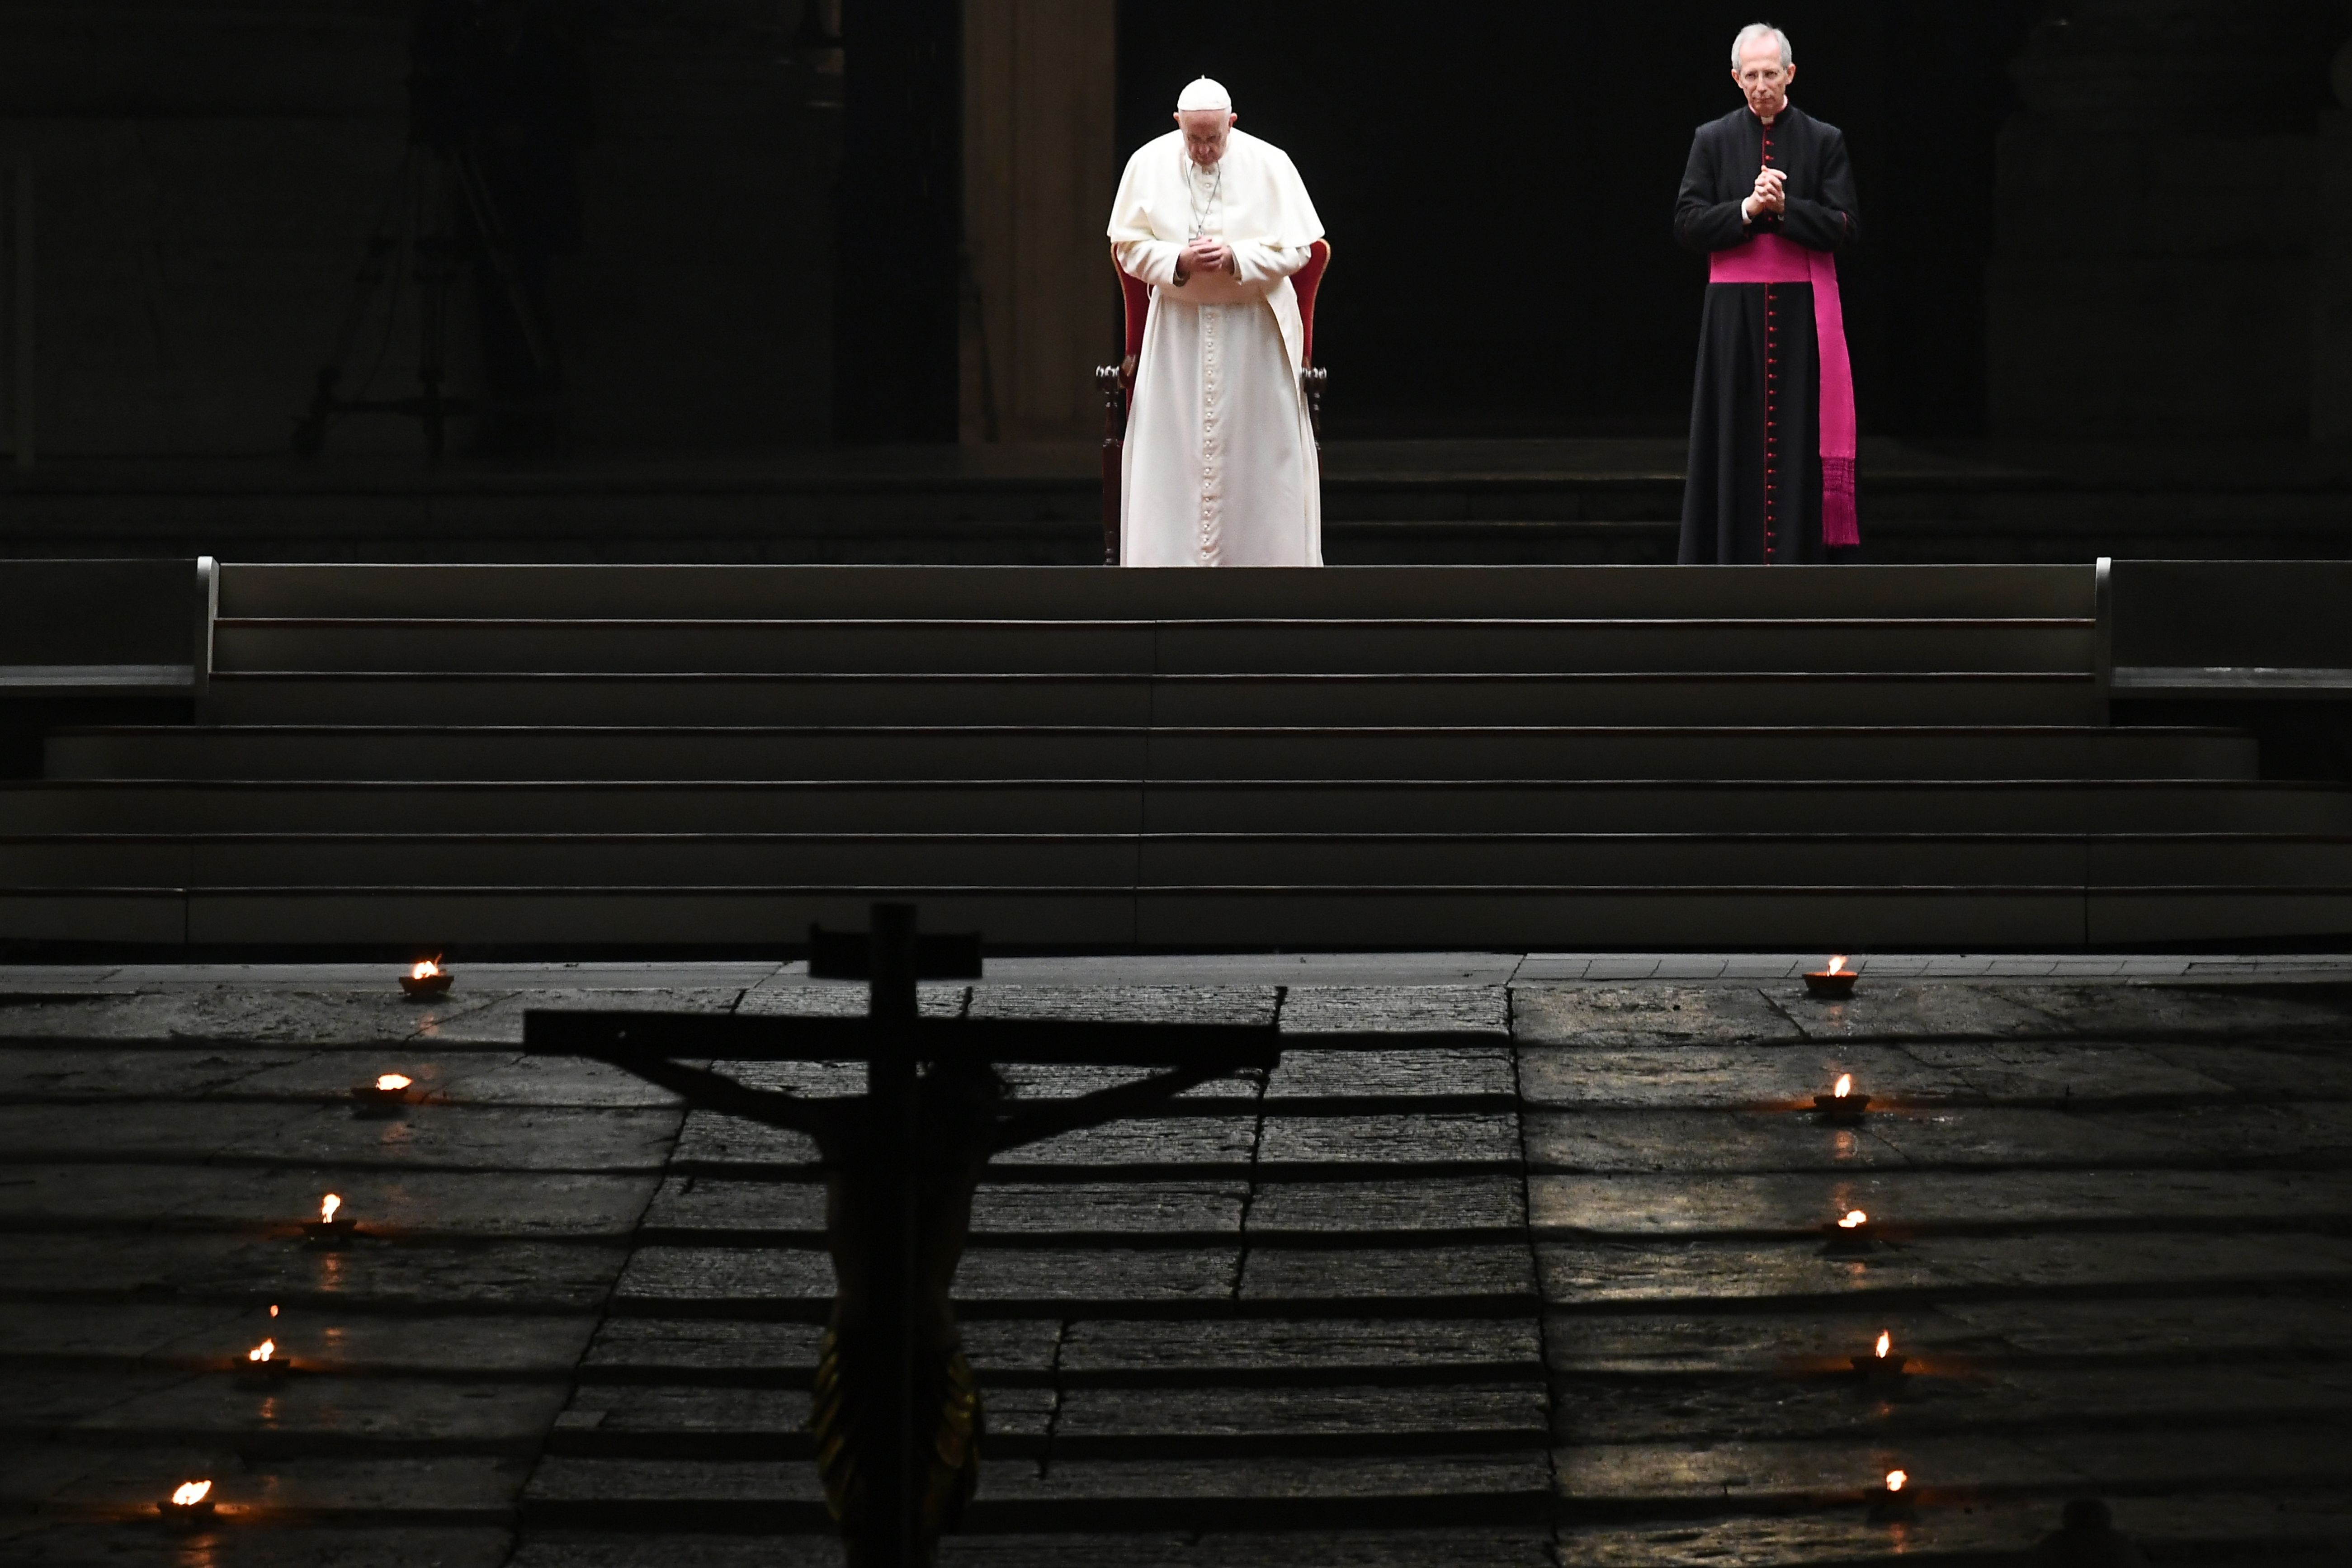 Pope Francis presides over Good Friday's Way of the Cross (Via Crucis) at St. Peter's Square in The Vatican on April 10, 2020. (Photo by VINCENZO PINTO/AFP via Getty Images)